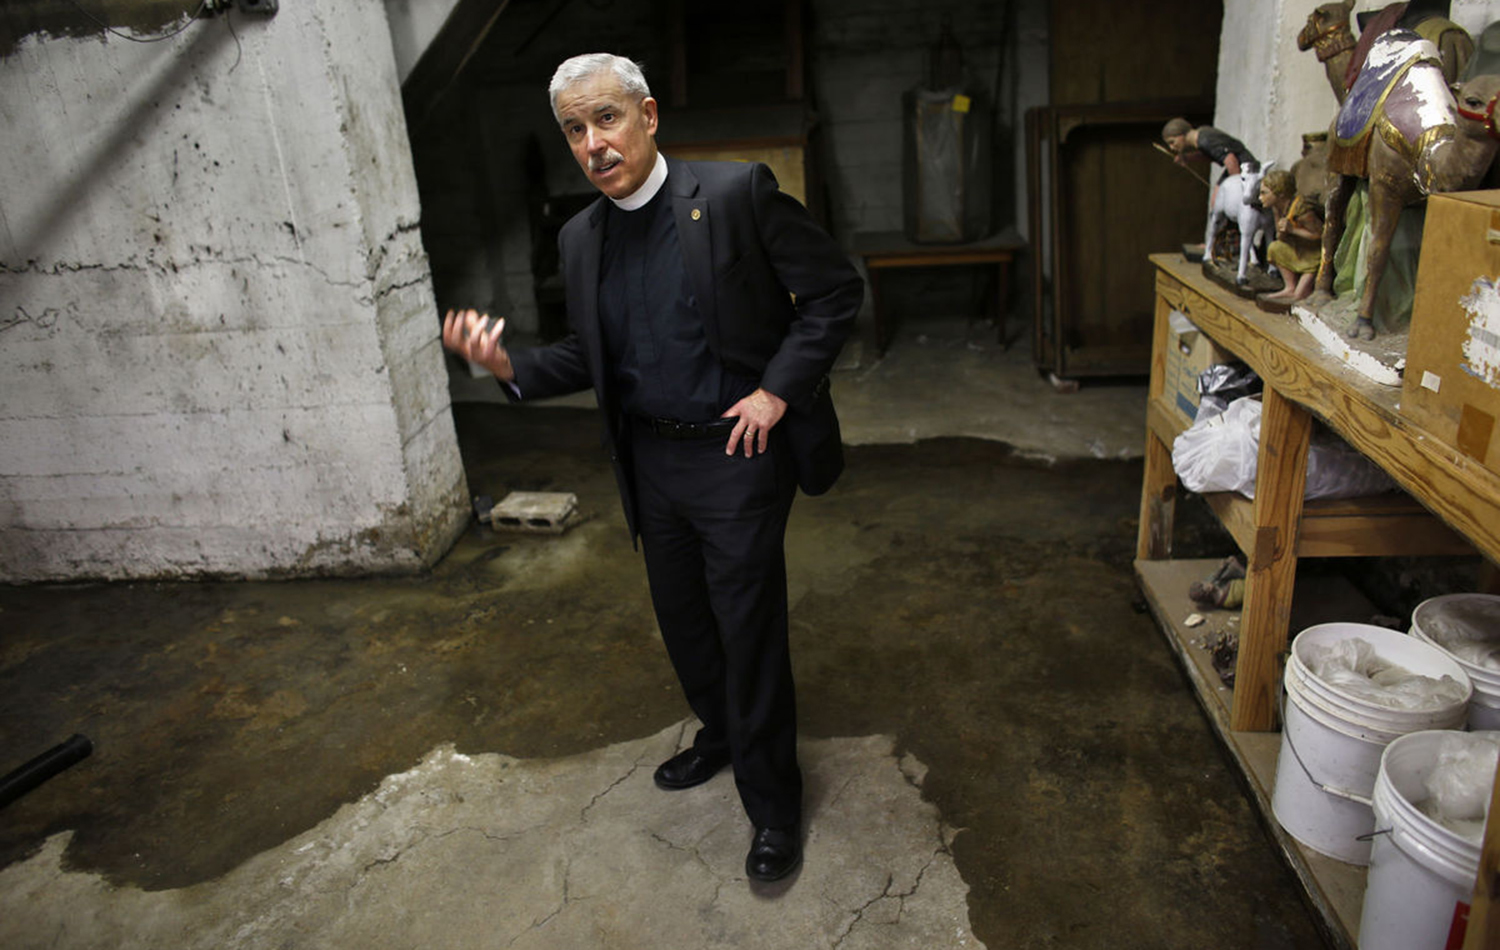 The Rev. Win Lewis shows how even on a sunny day, March 21, 2017, water can accumulate in the basement of Christ & St. Luke's Episcopal Church in Norfolk, which stands just across the street from the flood-prone Hague.